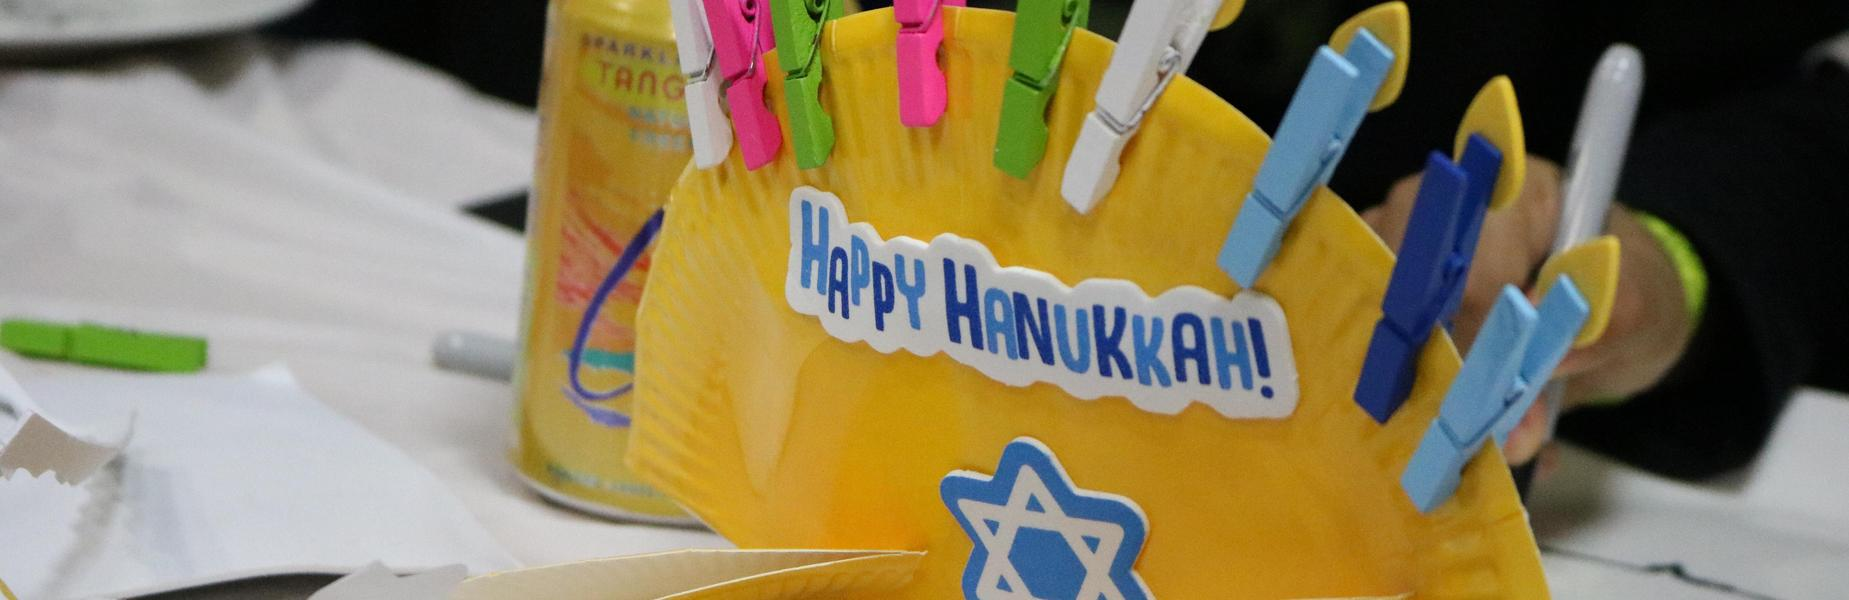 Photo of Hanukah craft at Handmade Holidays event at McKinley.